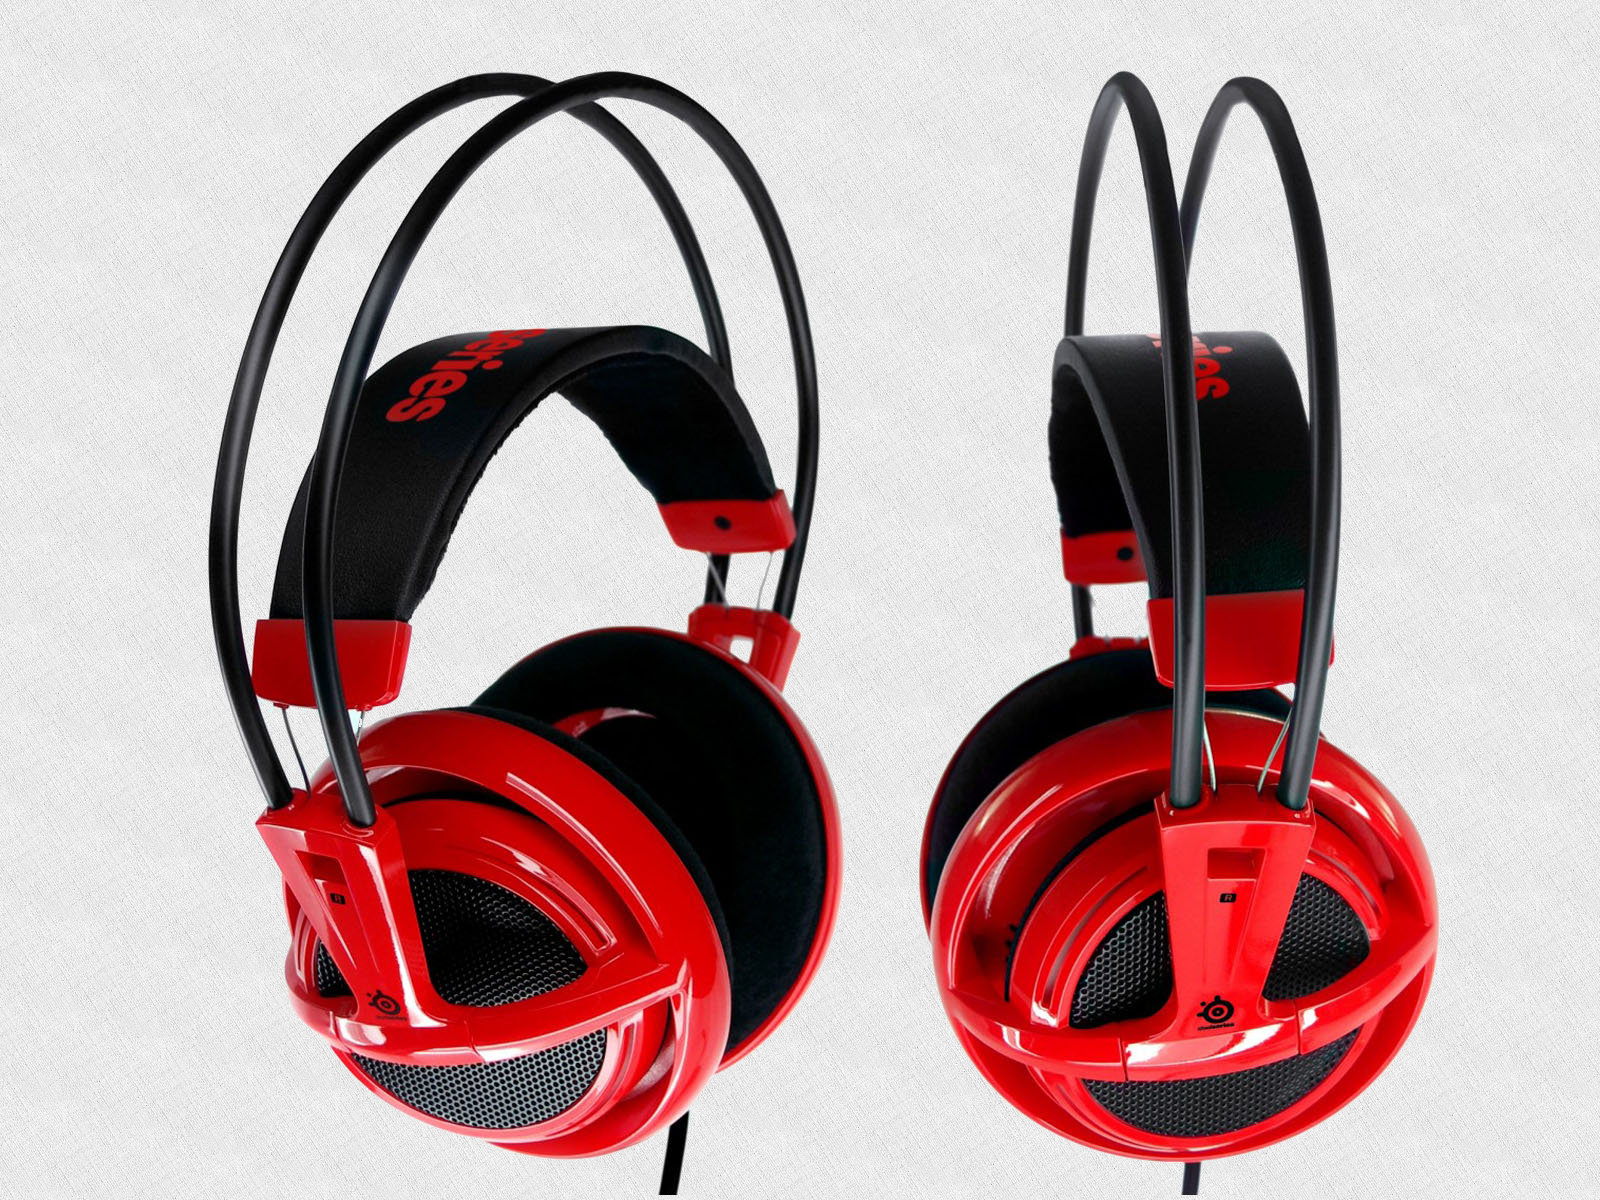 открывают ТОП SteelSeries Siberia Full-size Headset v2